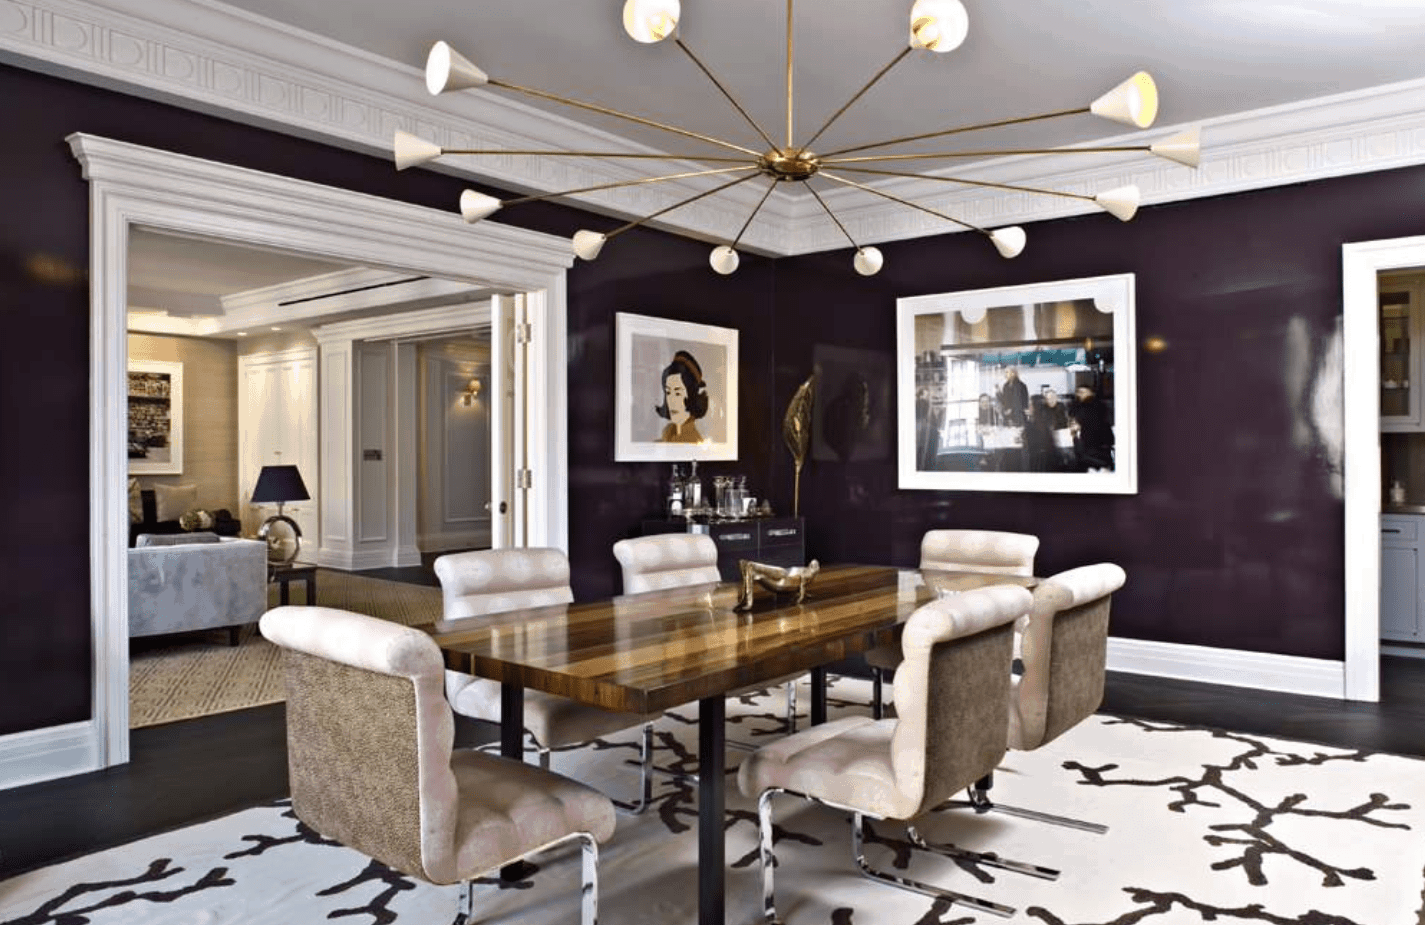 Spacious dining room featuring a large stylish rug covering the dark-finished flooring. The dining table and chairs look absolutely modish, lighted by a stunning ceiling lighting. The room is surrounded by purple walls with attractive wall decors.